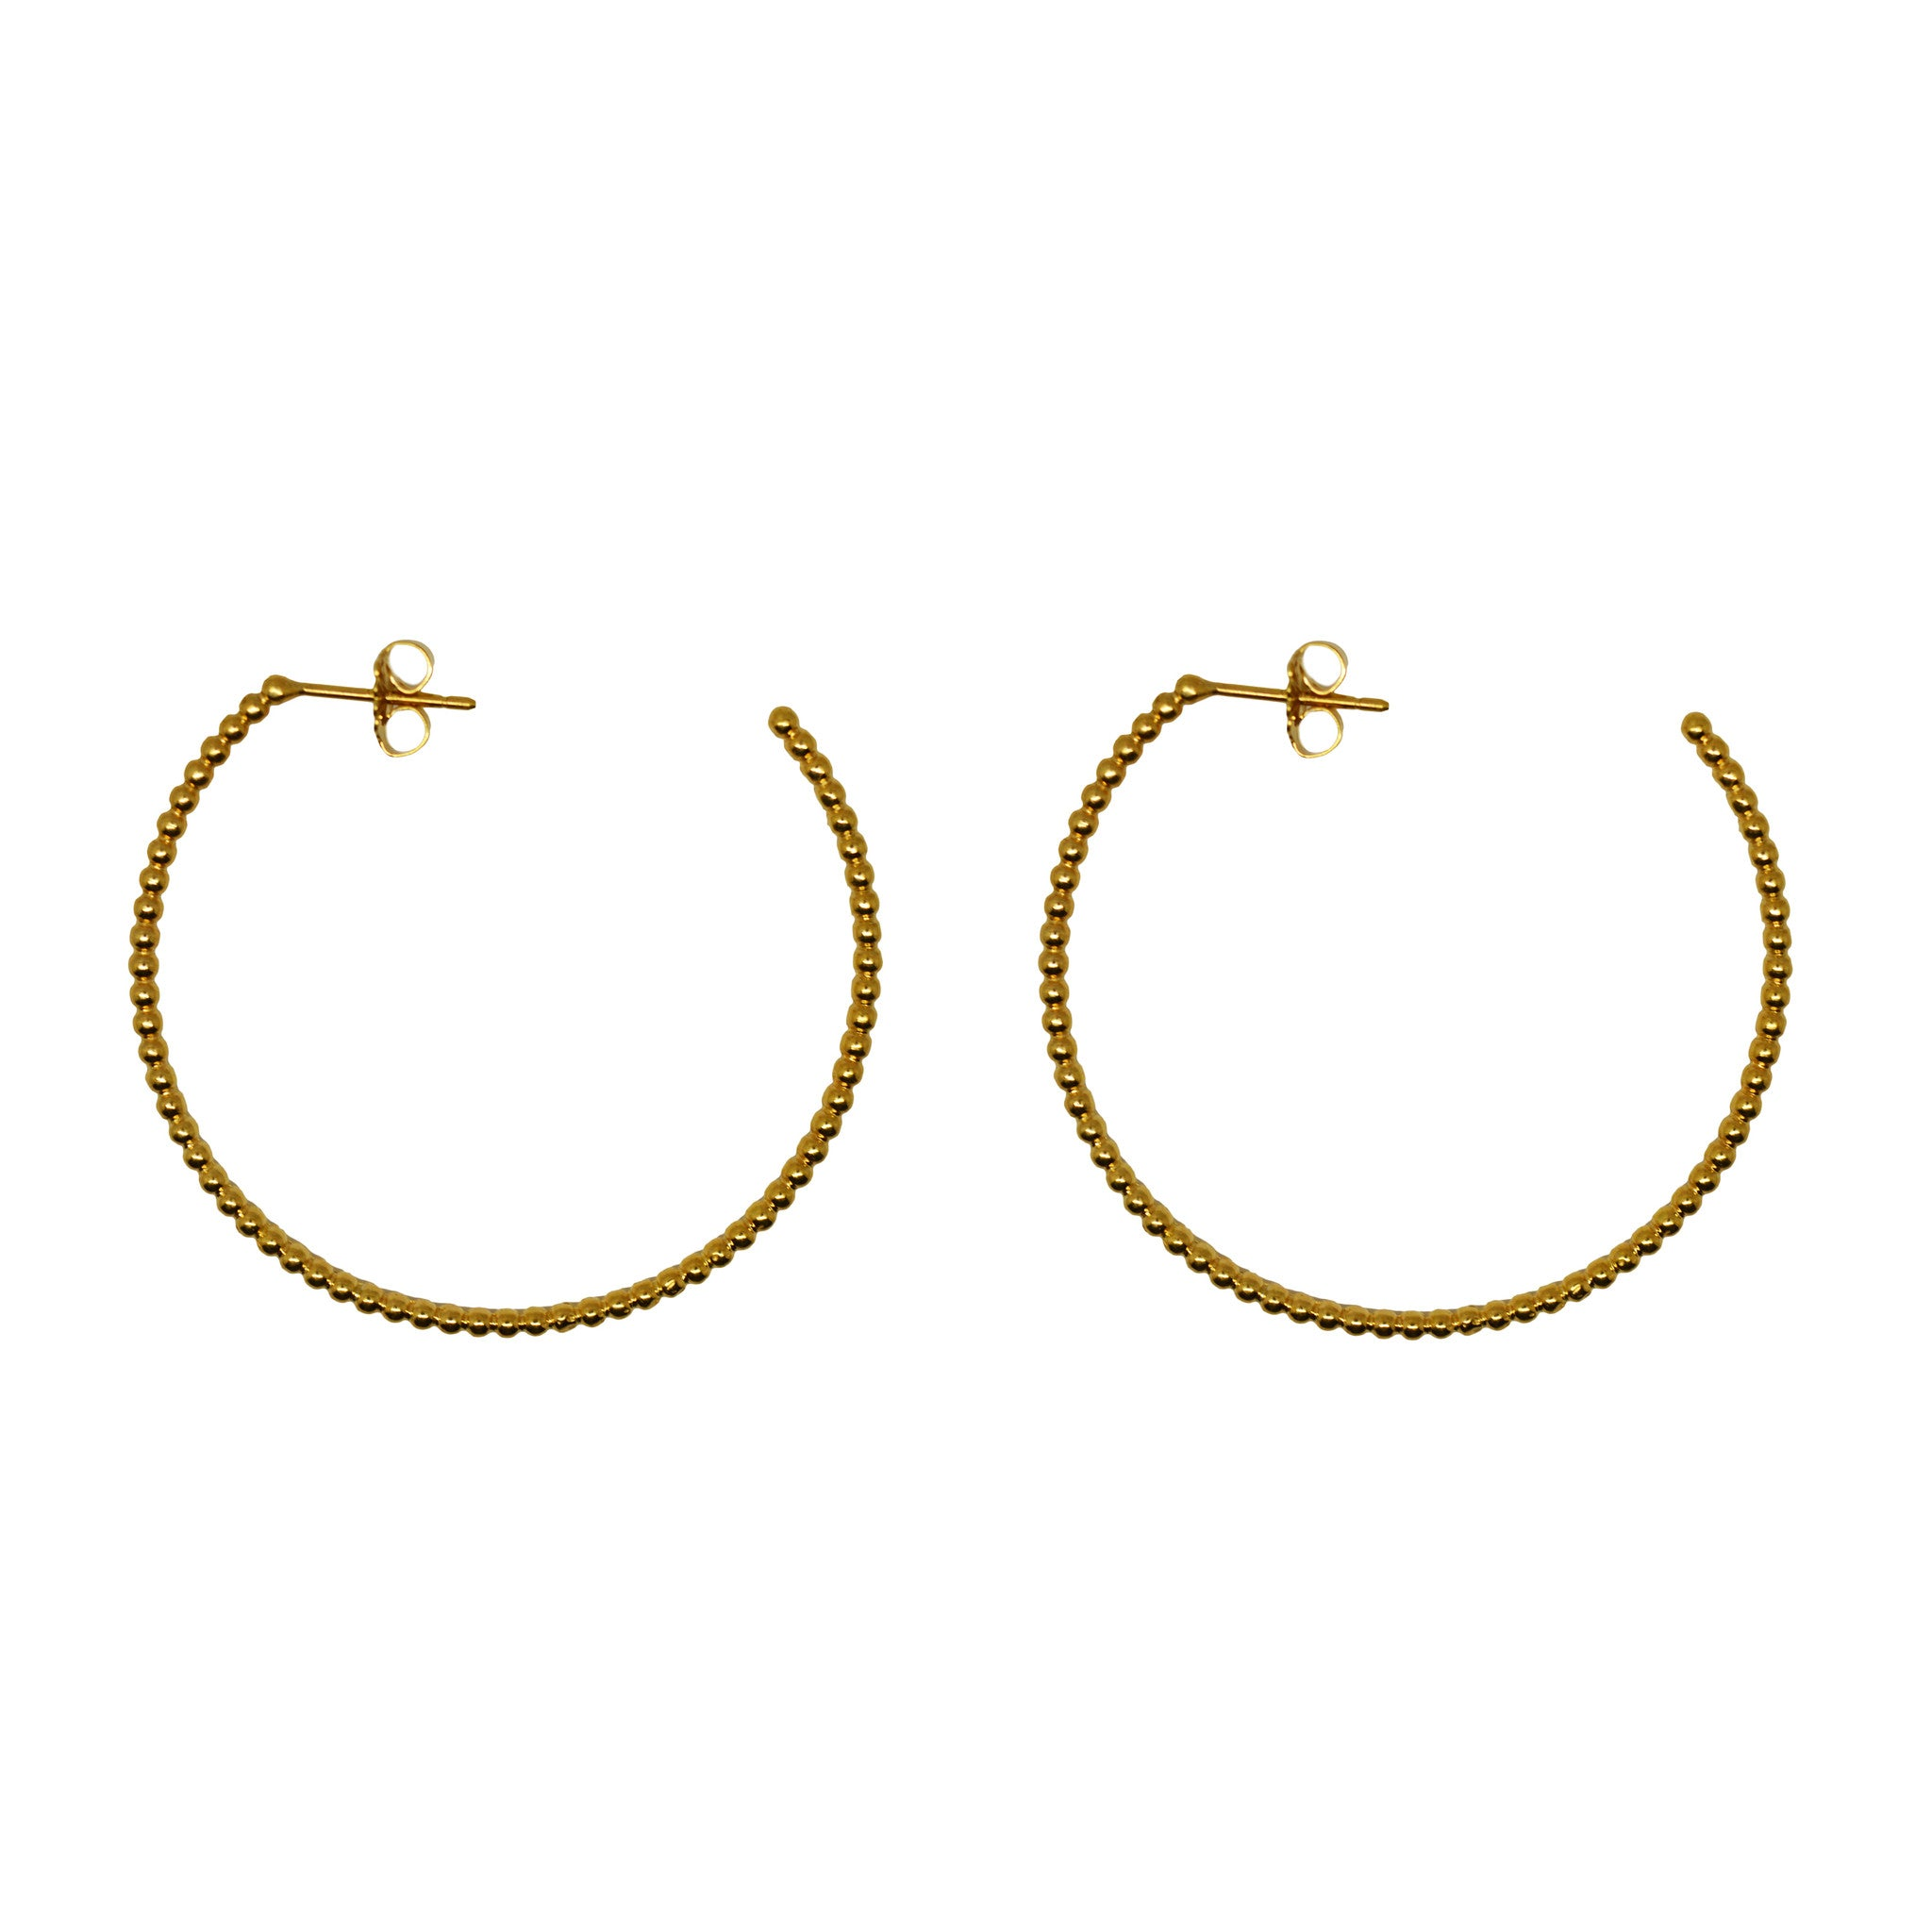 Coco\'s Liberty: Disco hoops | Jewelry -  Hiphunters Shop